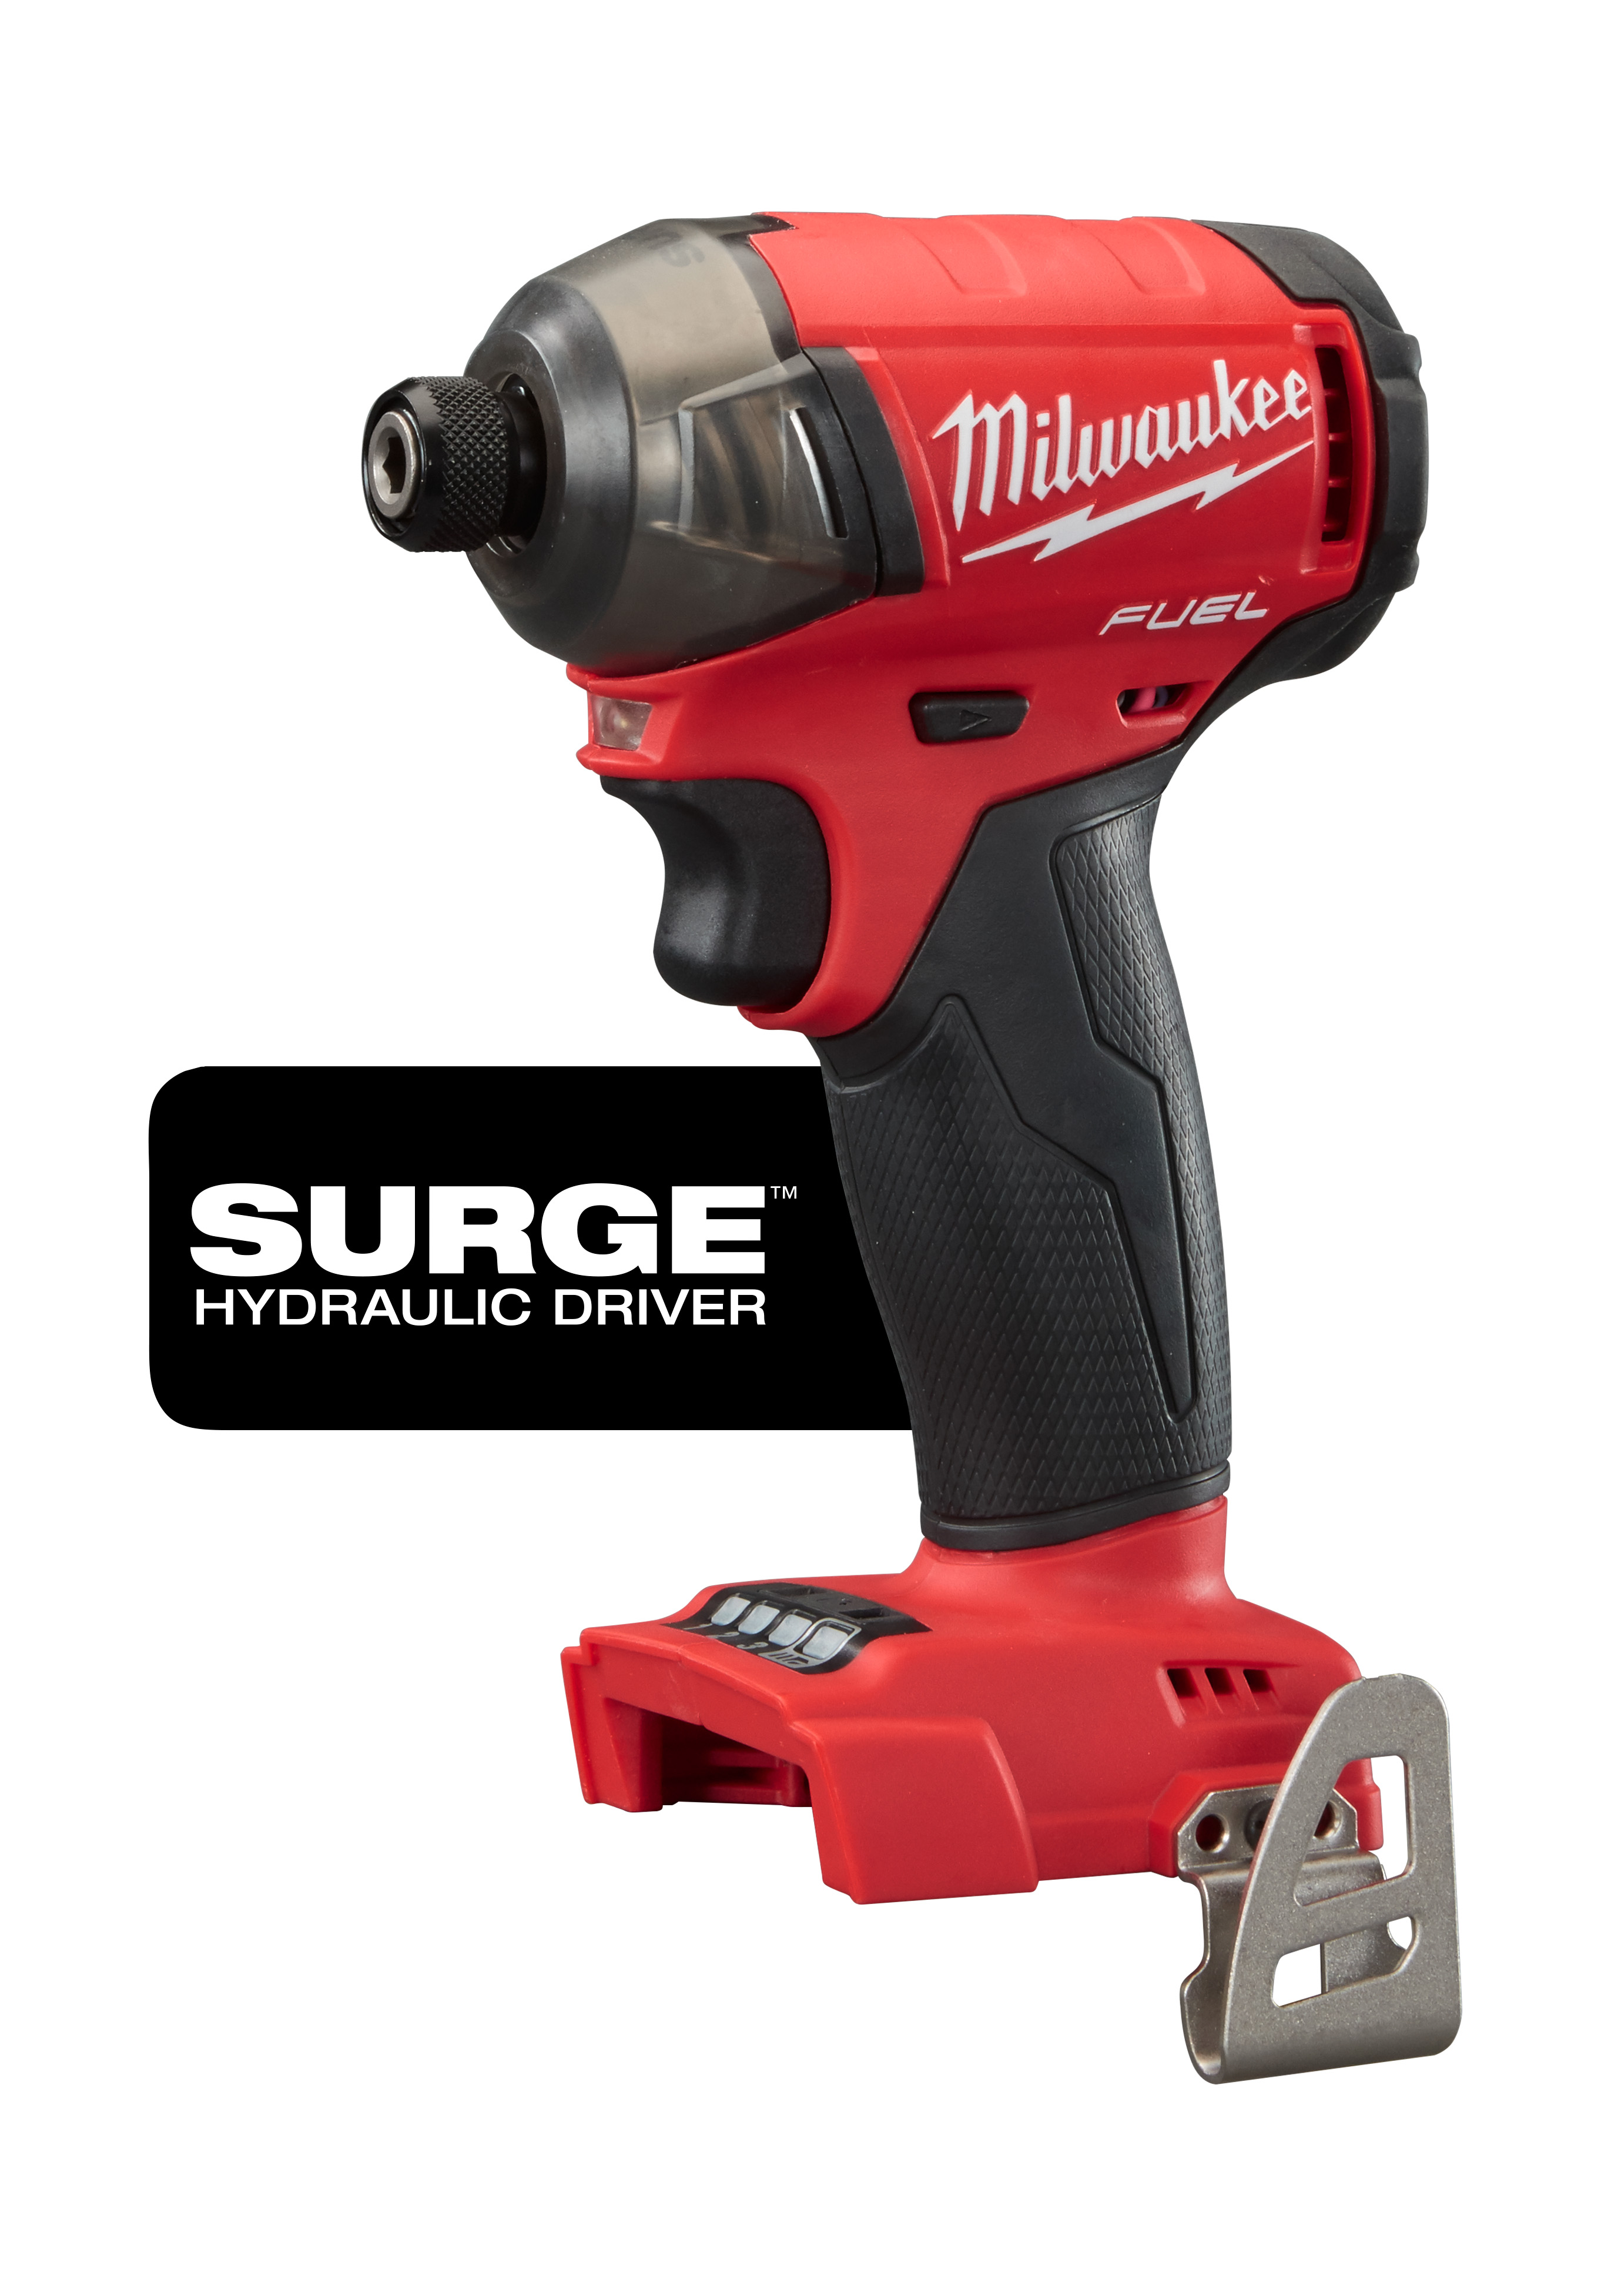 Milwaukee® M18™ FUEL™ 2760-20 SURGE™ Cordless Impact Driver, 1/4 in Hex/Straight Drive, 4000 bpm, 450 in-lb Torque, 18 VDC, 5 in OAL